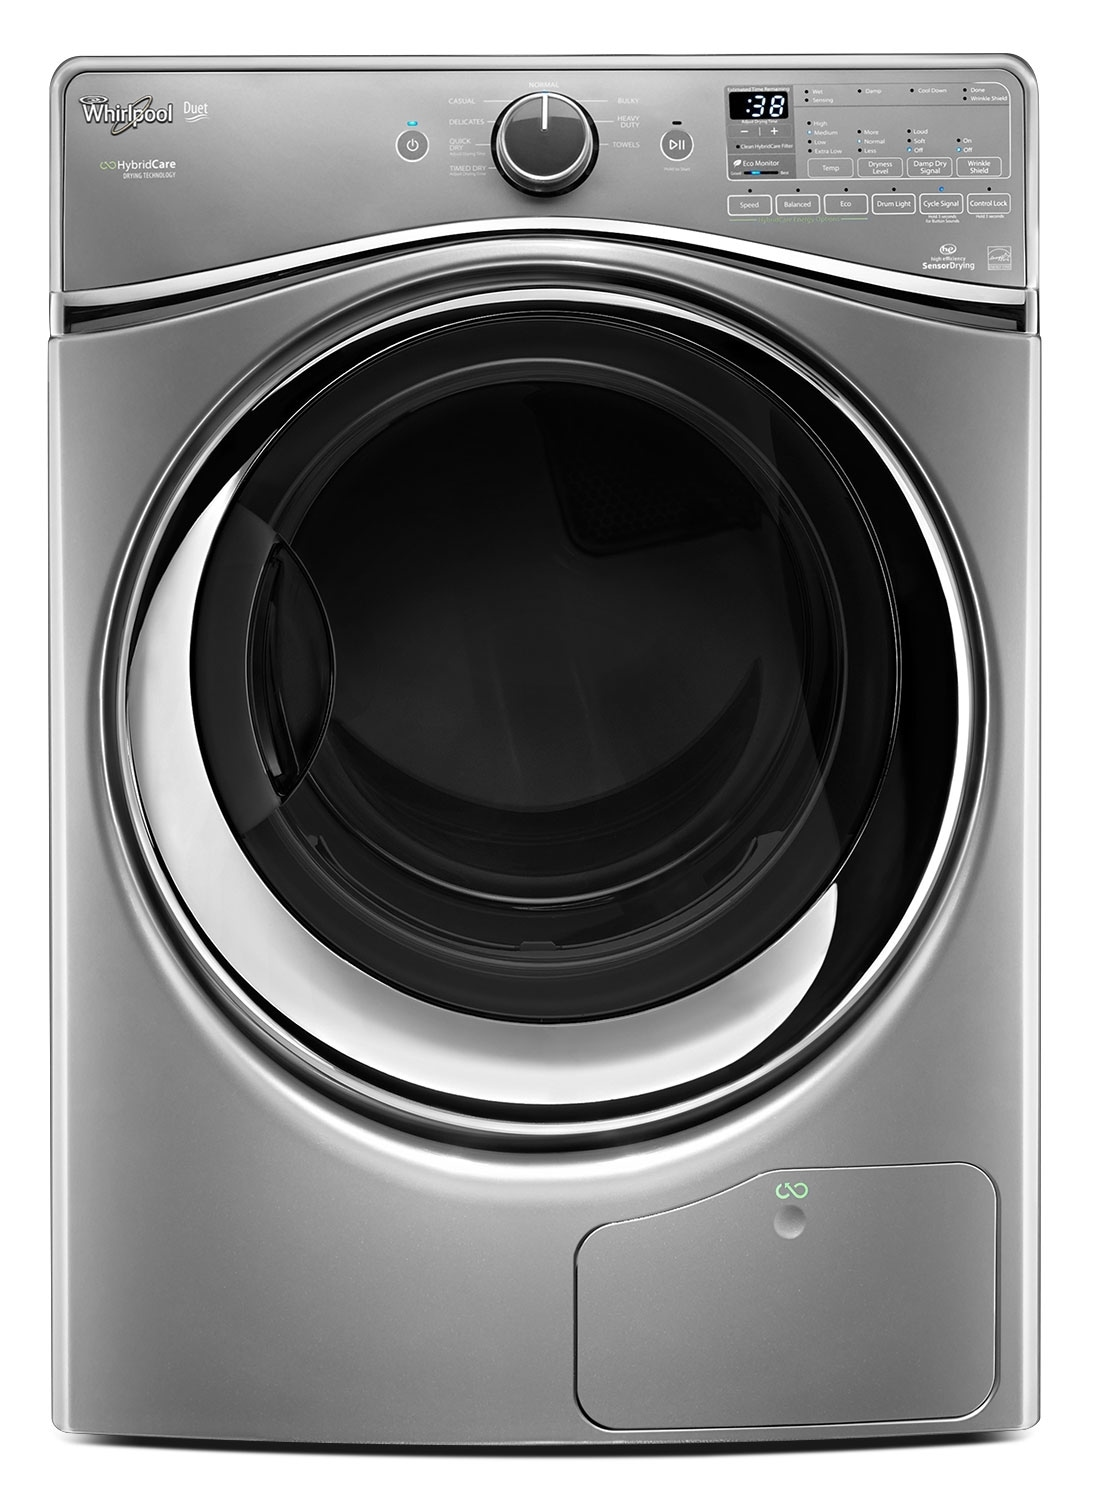 Washers and Dryers - Whirlpool 7.3 Cu. Ft. HybridCare™ Ventless Duet® Dryer - Chrome